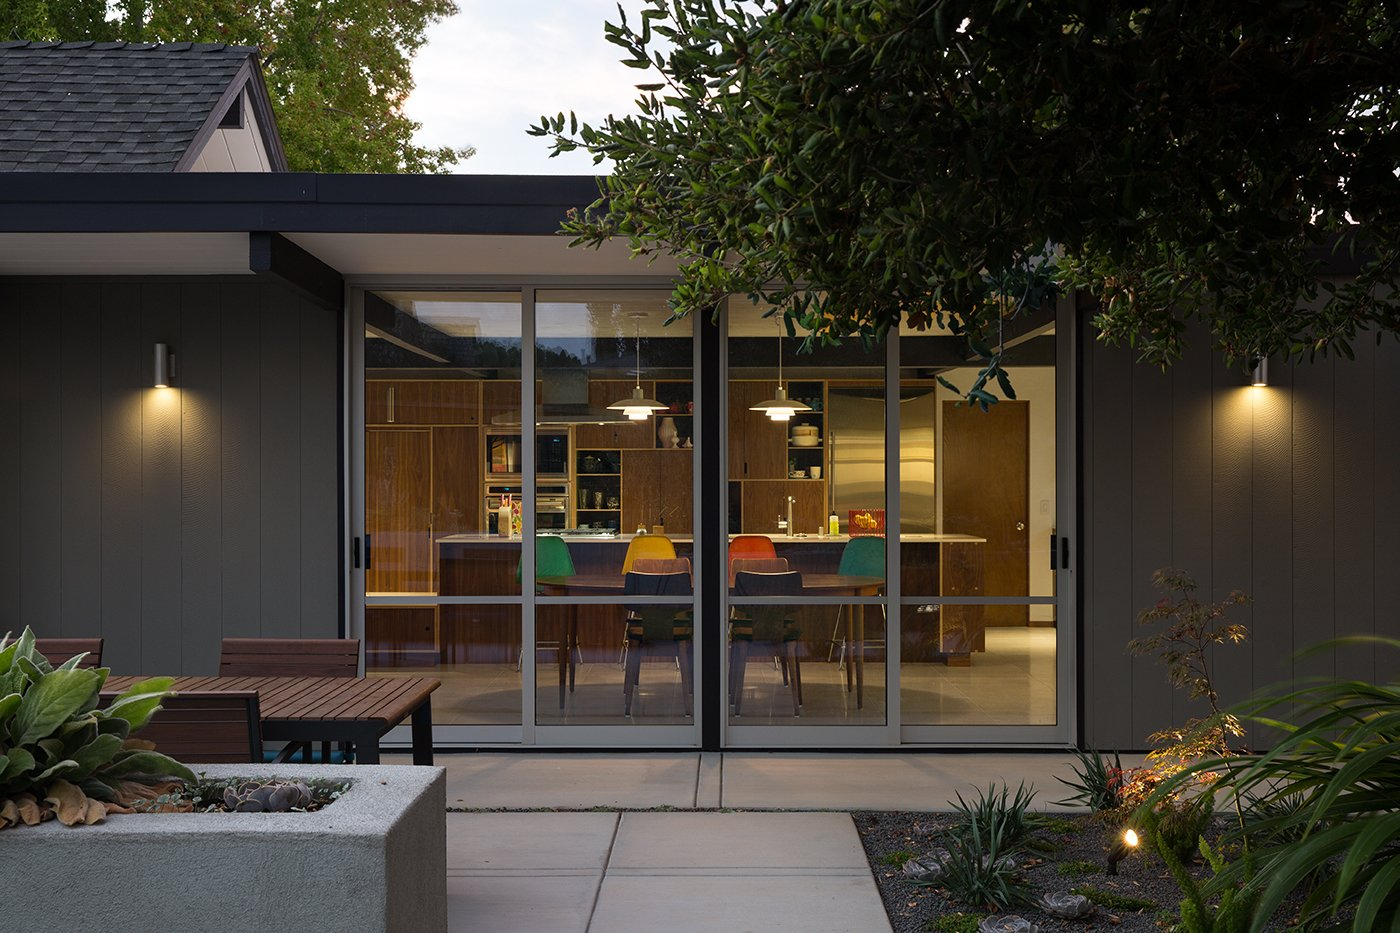 "Exterior and Mid-Century Building Type Renewed Classic Eichler Remodel  Klopf Architecture, Growsgreen Landscape Design, and Flegel's Construction partnered to bring this mid-century atrium Eichler home up to 21st century standards. Together with the owners, Geoff Campen and the Klopf Architecture team carefully integrated elements and ideas from the mid-century period without making the space seem dated. They entrusted Klopf Architecture to respectfully expand and update the home, while still keeping it ""classic"". The Klopf team helped them open up the kitchen, dining, and living spaces into one flowing great room, expand the master suite, replace the kitchen and bathrooms, and provide additional features like an office and powder room, all while maintaining the mid-century modern style of this Silicon Valley home.   Klopf Architecture"